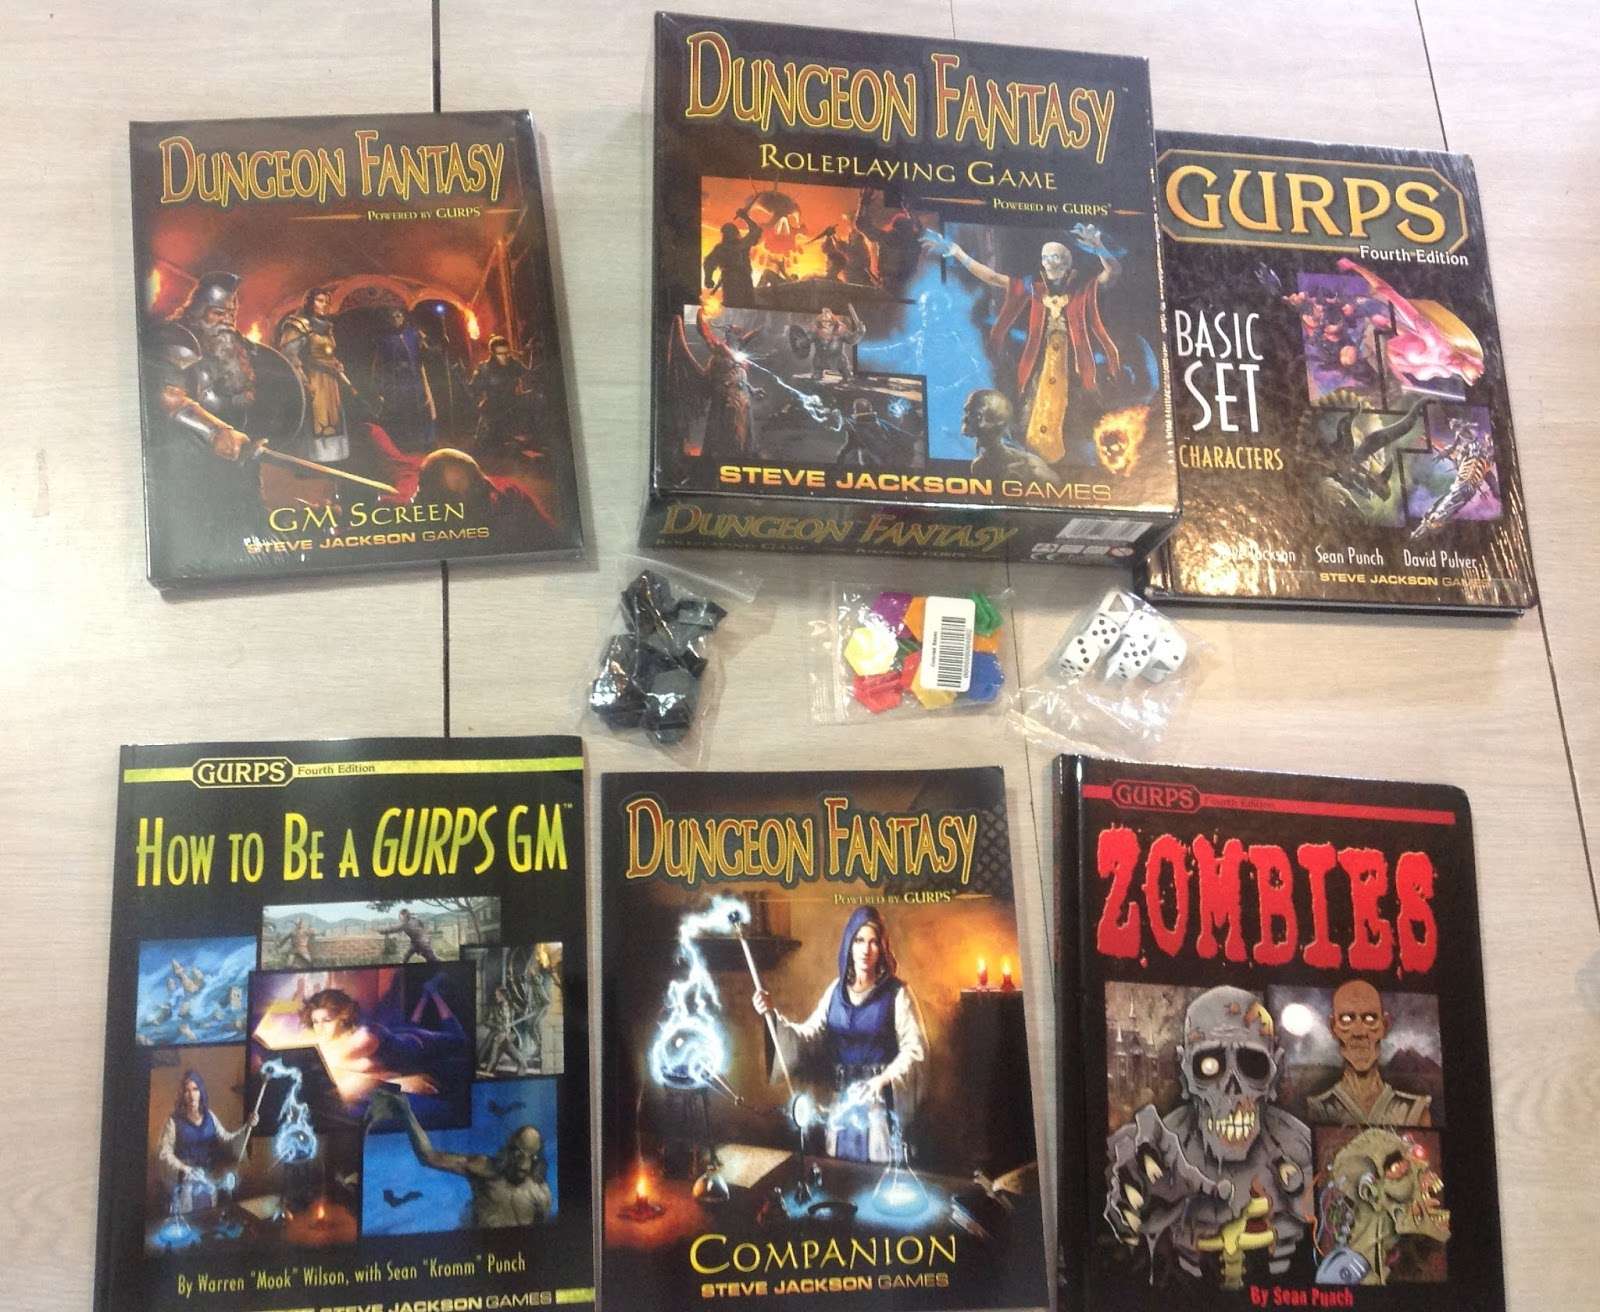 Bat in the Attic: Dungeons Fantasy RPG for GURPS has arrived